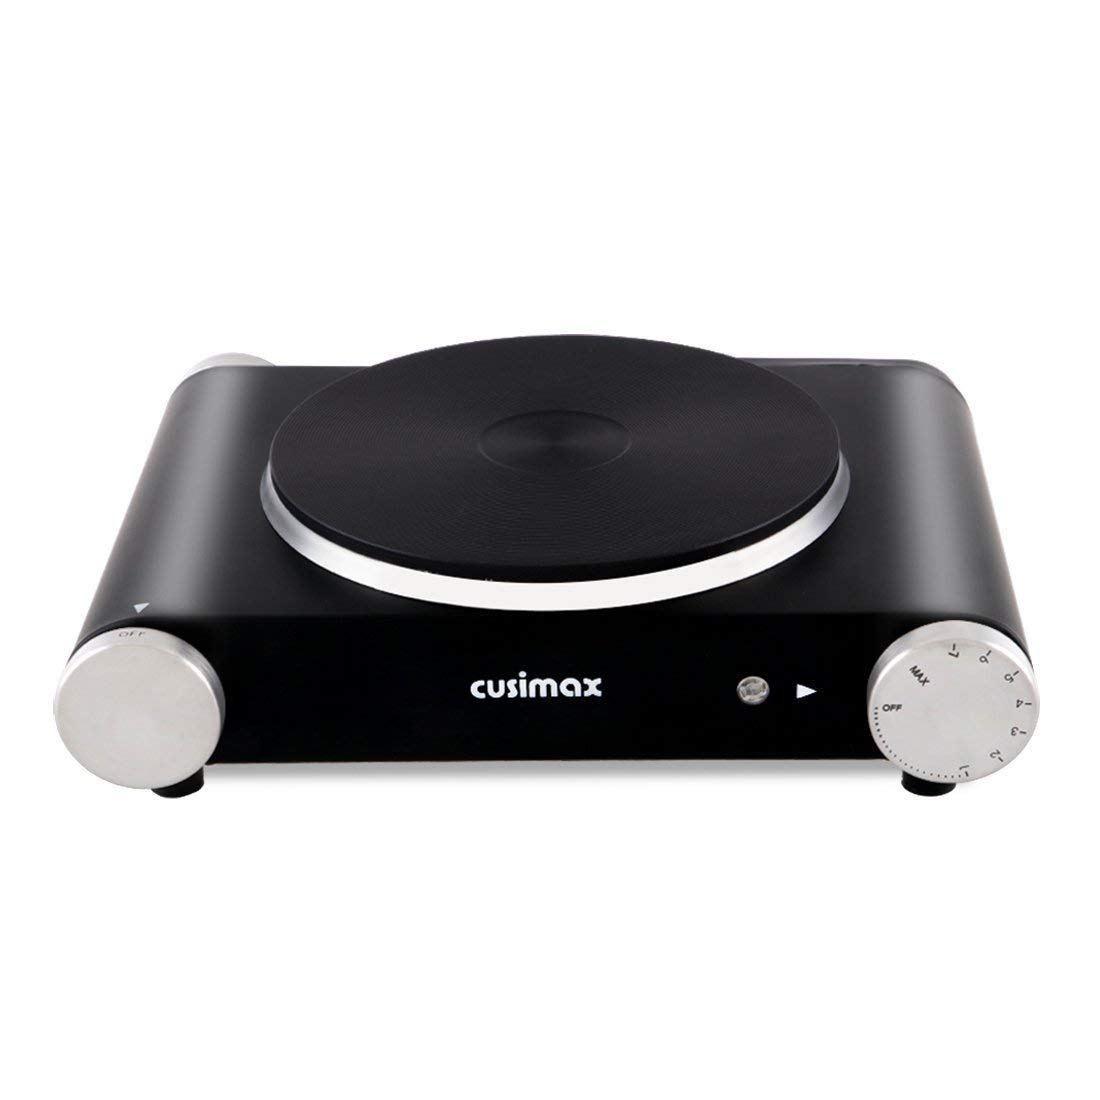 Cusimax Electric Hot Plate - 1500W Portable Single Countertop Burner - CMHP-B101 - Stainless Steel - Black - Upgrated